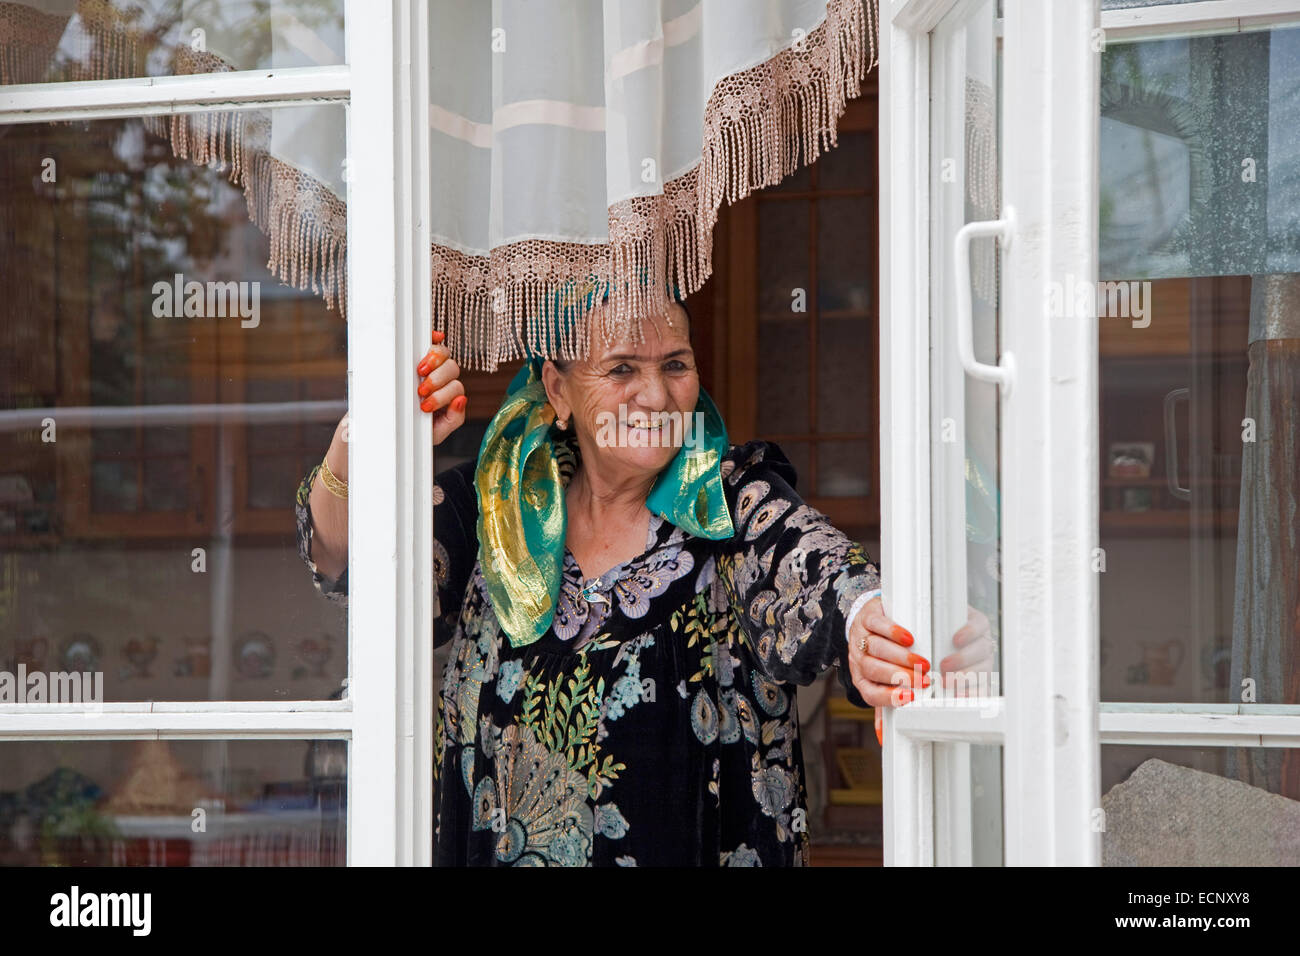 Smiling Uzbek elderly woman showing golden teeth and orange finger tips dyed with henna at home, Samarkand, Uzbekistan - Stock Image